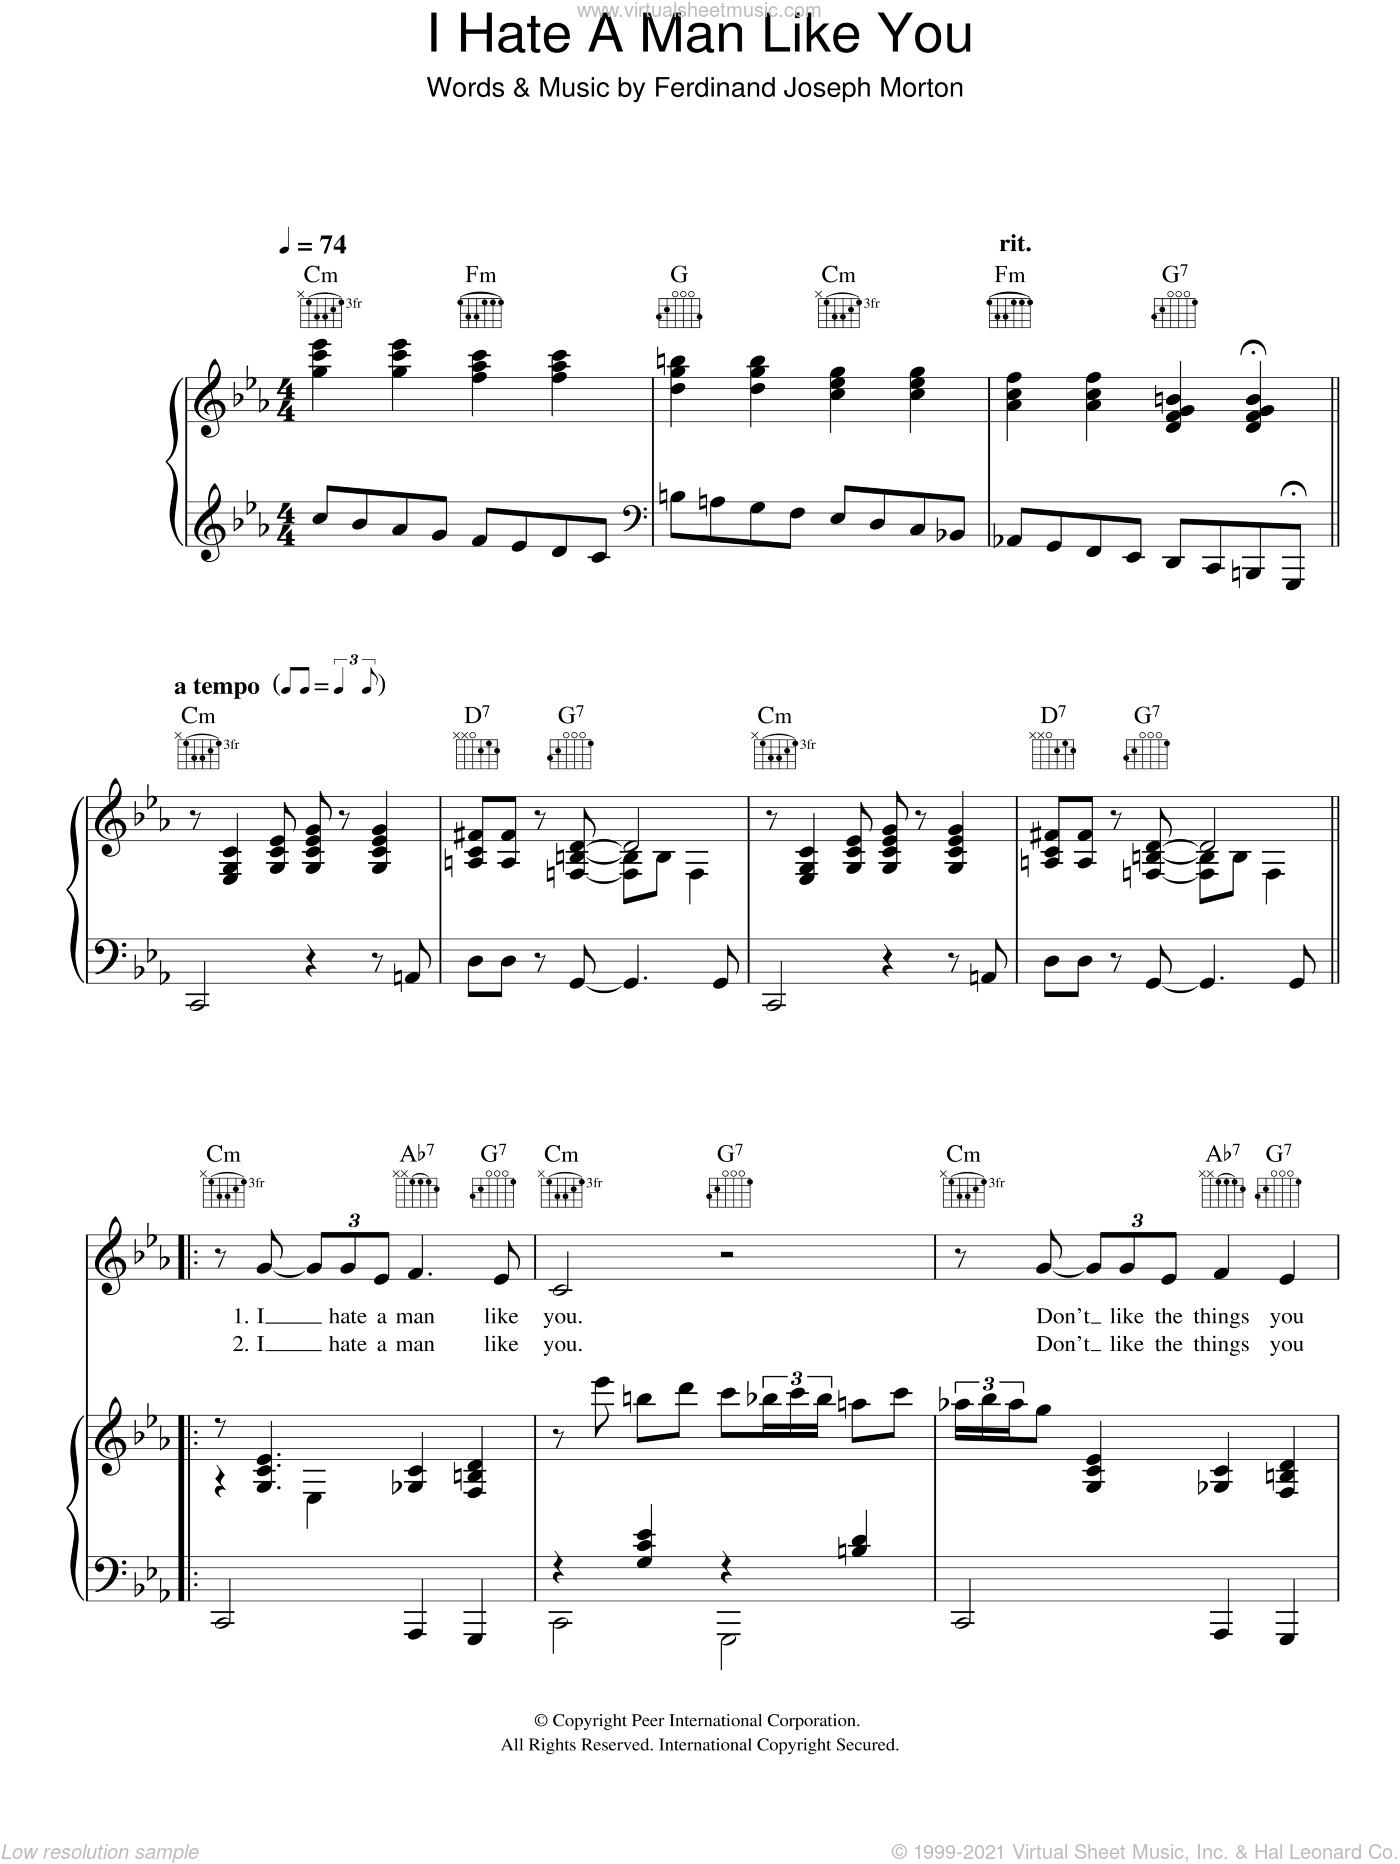 I Hate A Man Like You sheet music for voice, piano or guitar by Hugh Laurie and Ferdinand Joseph Morton, intermediate skill level